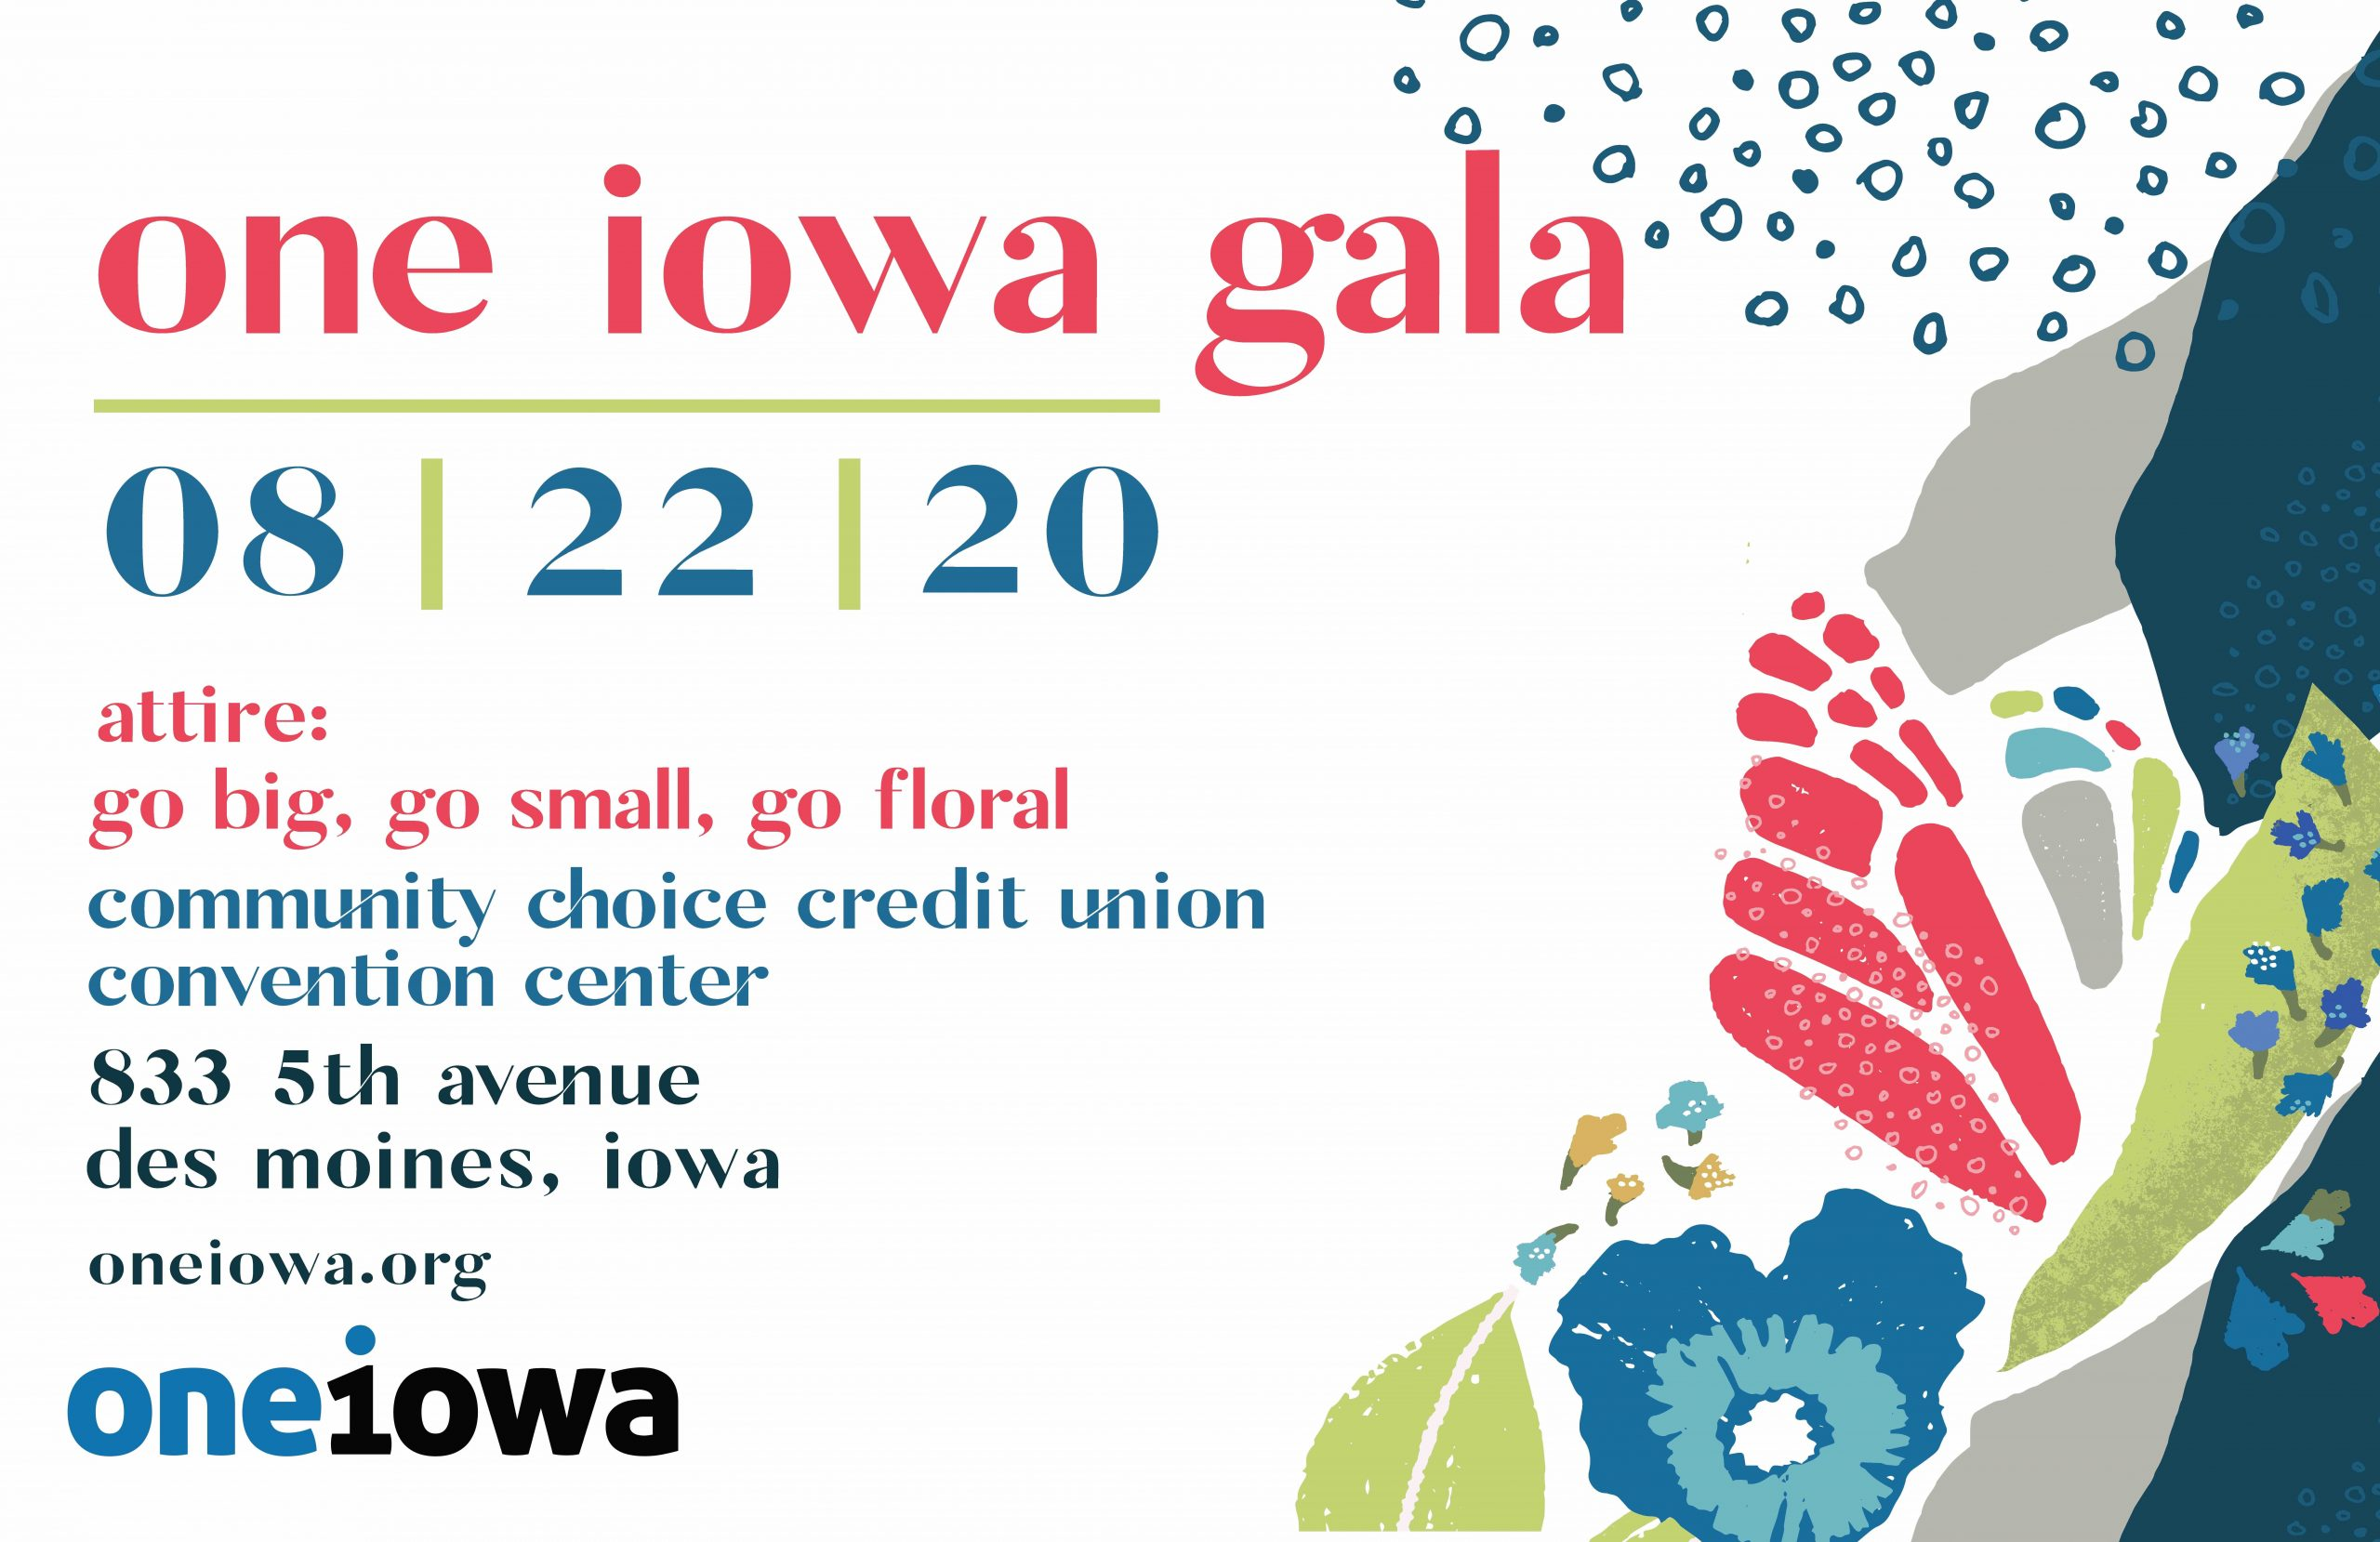 One Iowa Gala - Aug 22, 2020